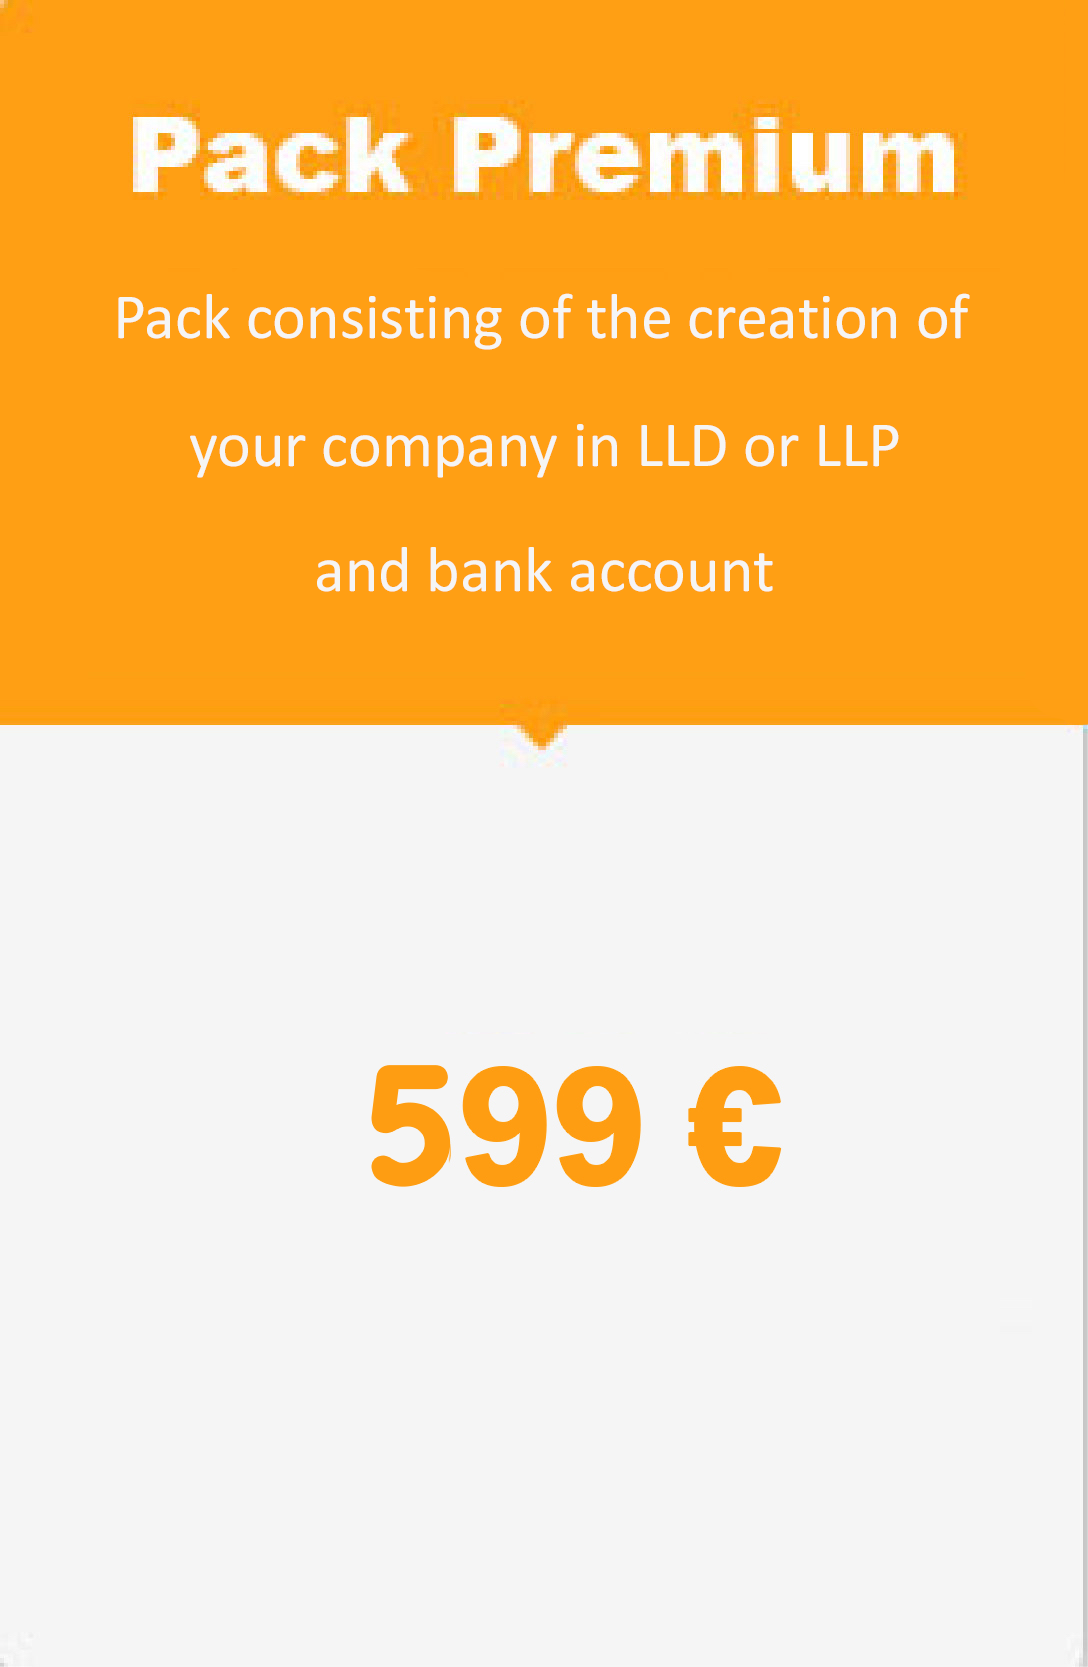 Pack consisting of the creation of your company in LLD or LLP and bank account